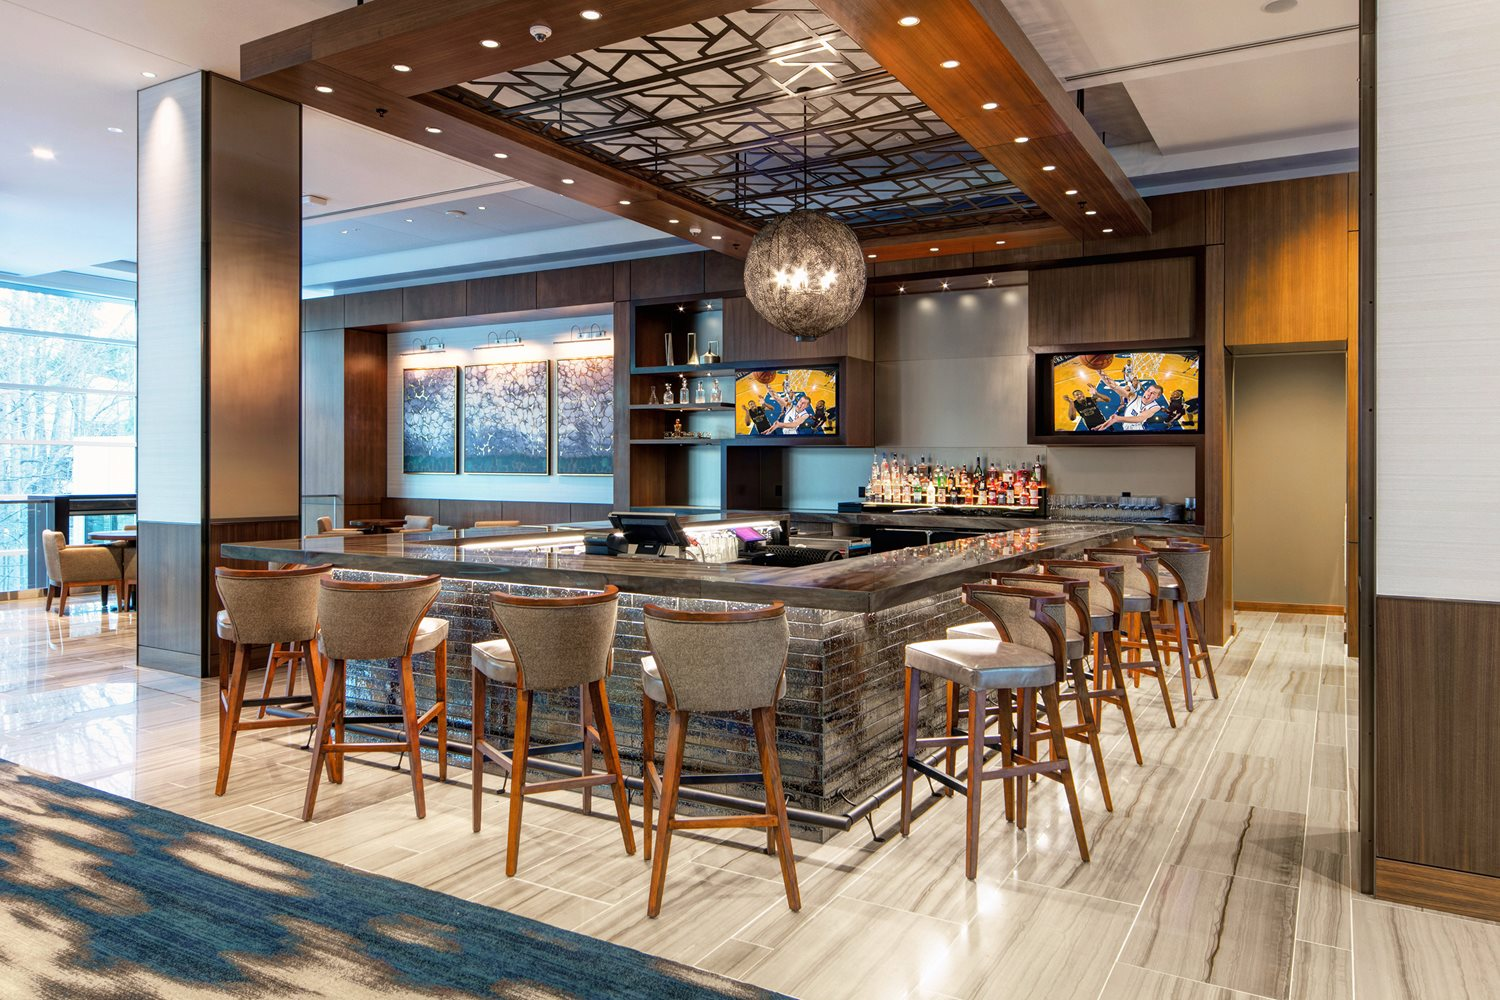 Small bar area with marble countertops, grey stools, and two TVs with fully stocked bar